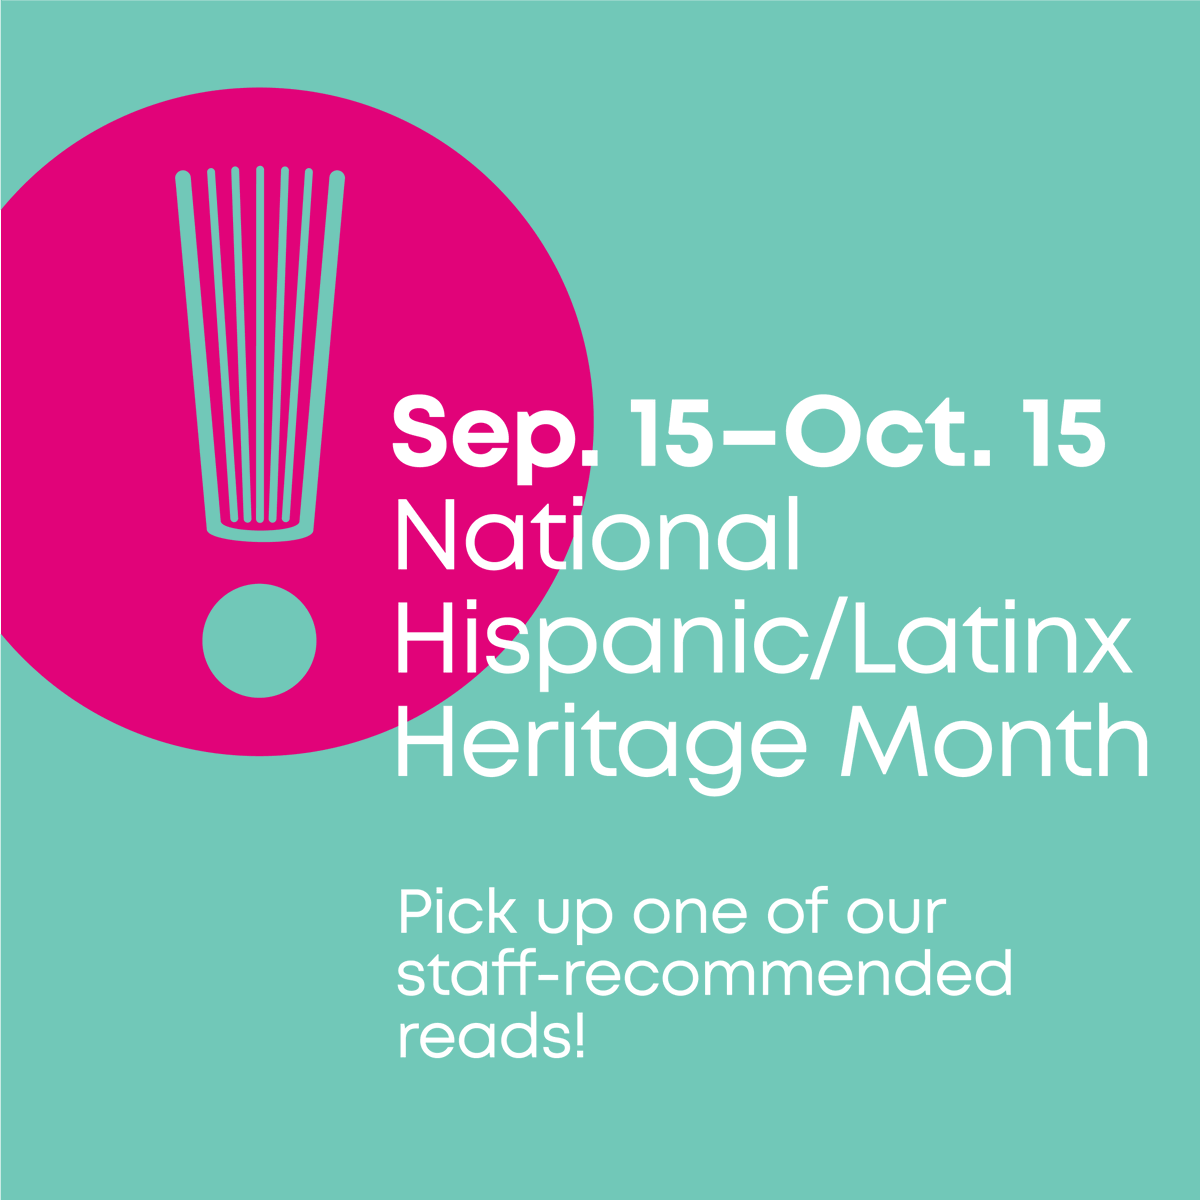 We're celebrating National Hispanic/Latinx Heritage Month by highlighting a variety of stories that honor the contributions of Hispanic/Latinx Americans to our country. Click on the link in bio to find out more!